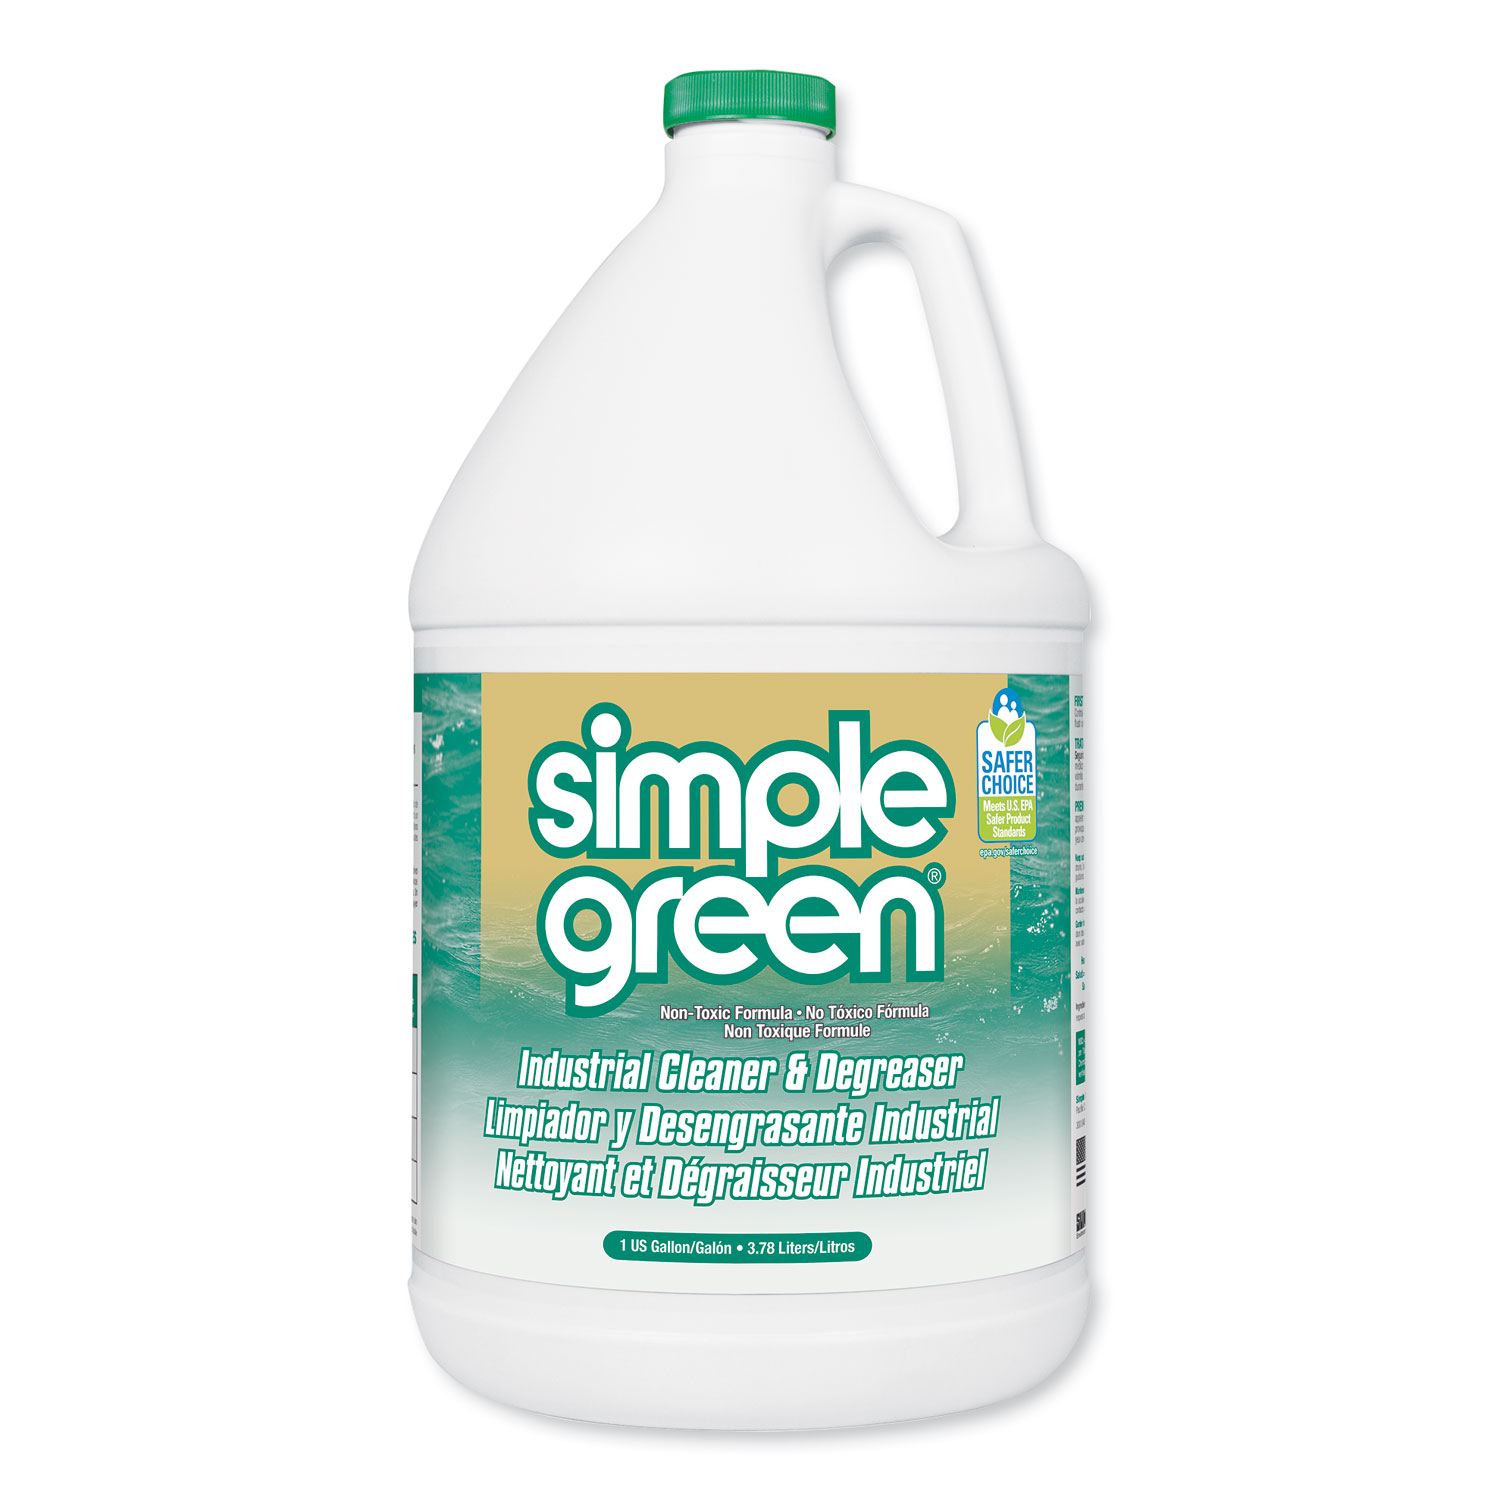 Industrial Cleaner and Degreaser, Concentrated, 1 gal Bottle